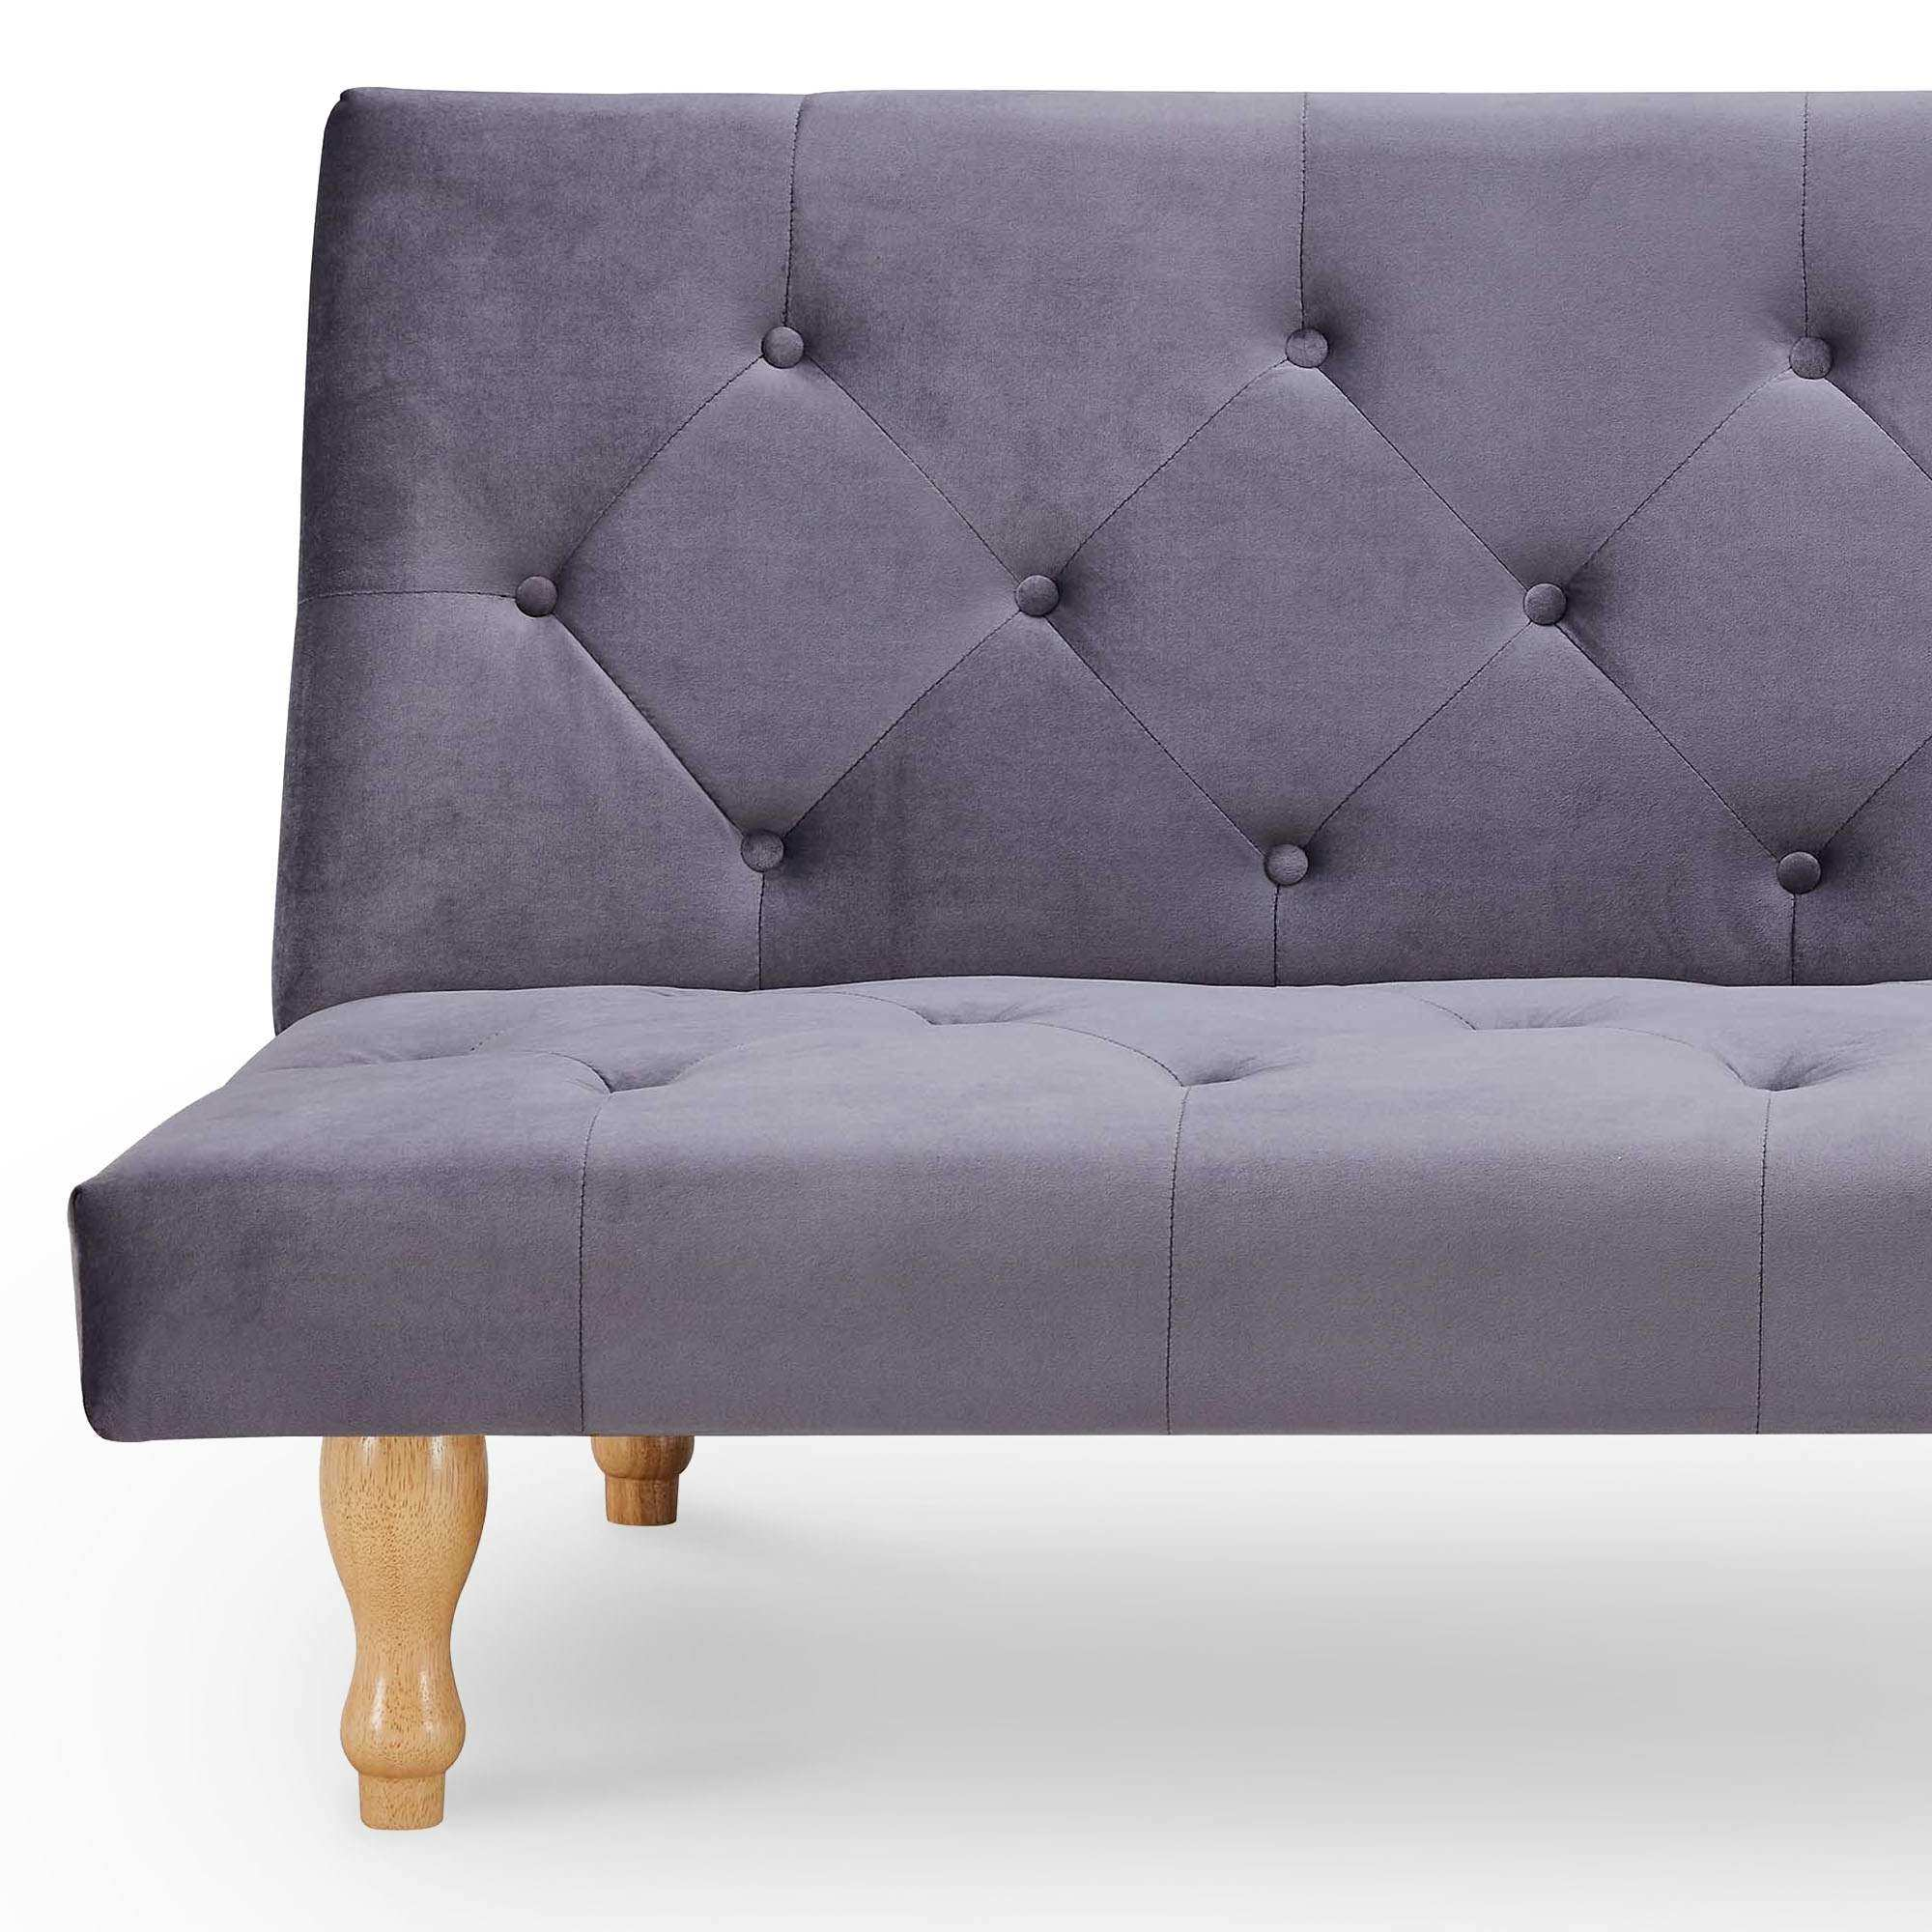 Banquette clic-clac convertible en velours gris 3 places JASON